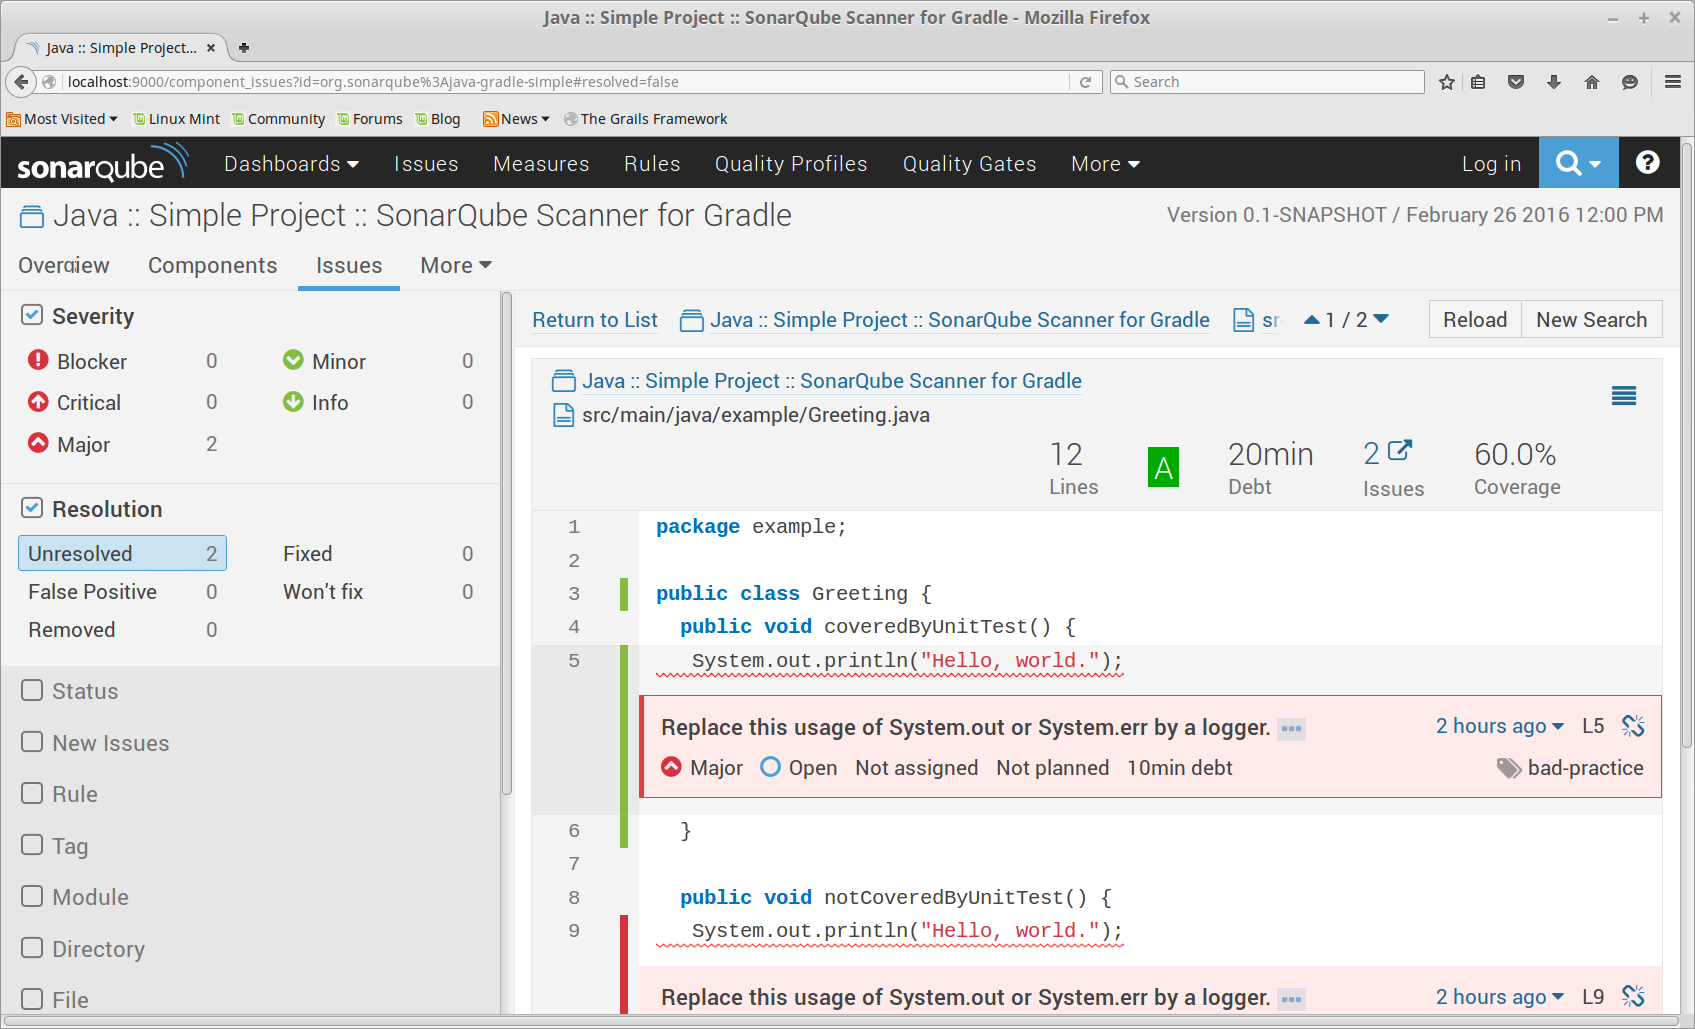 sonarqube-simple-java-project-issues-overview.png